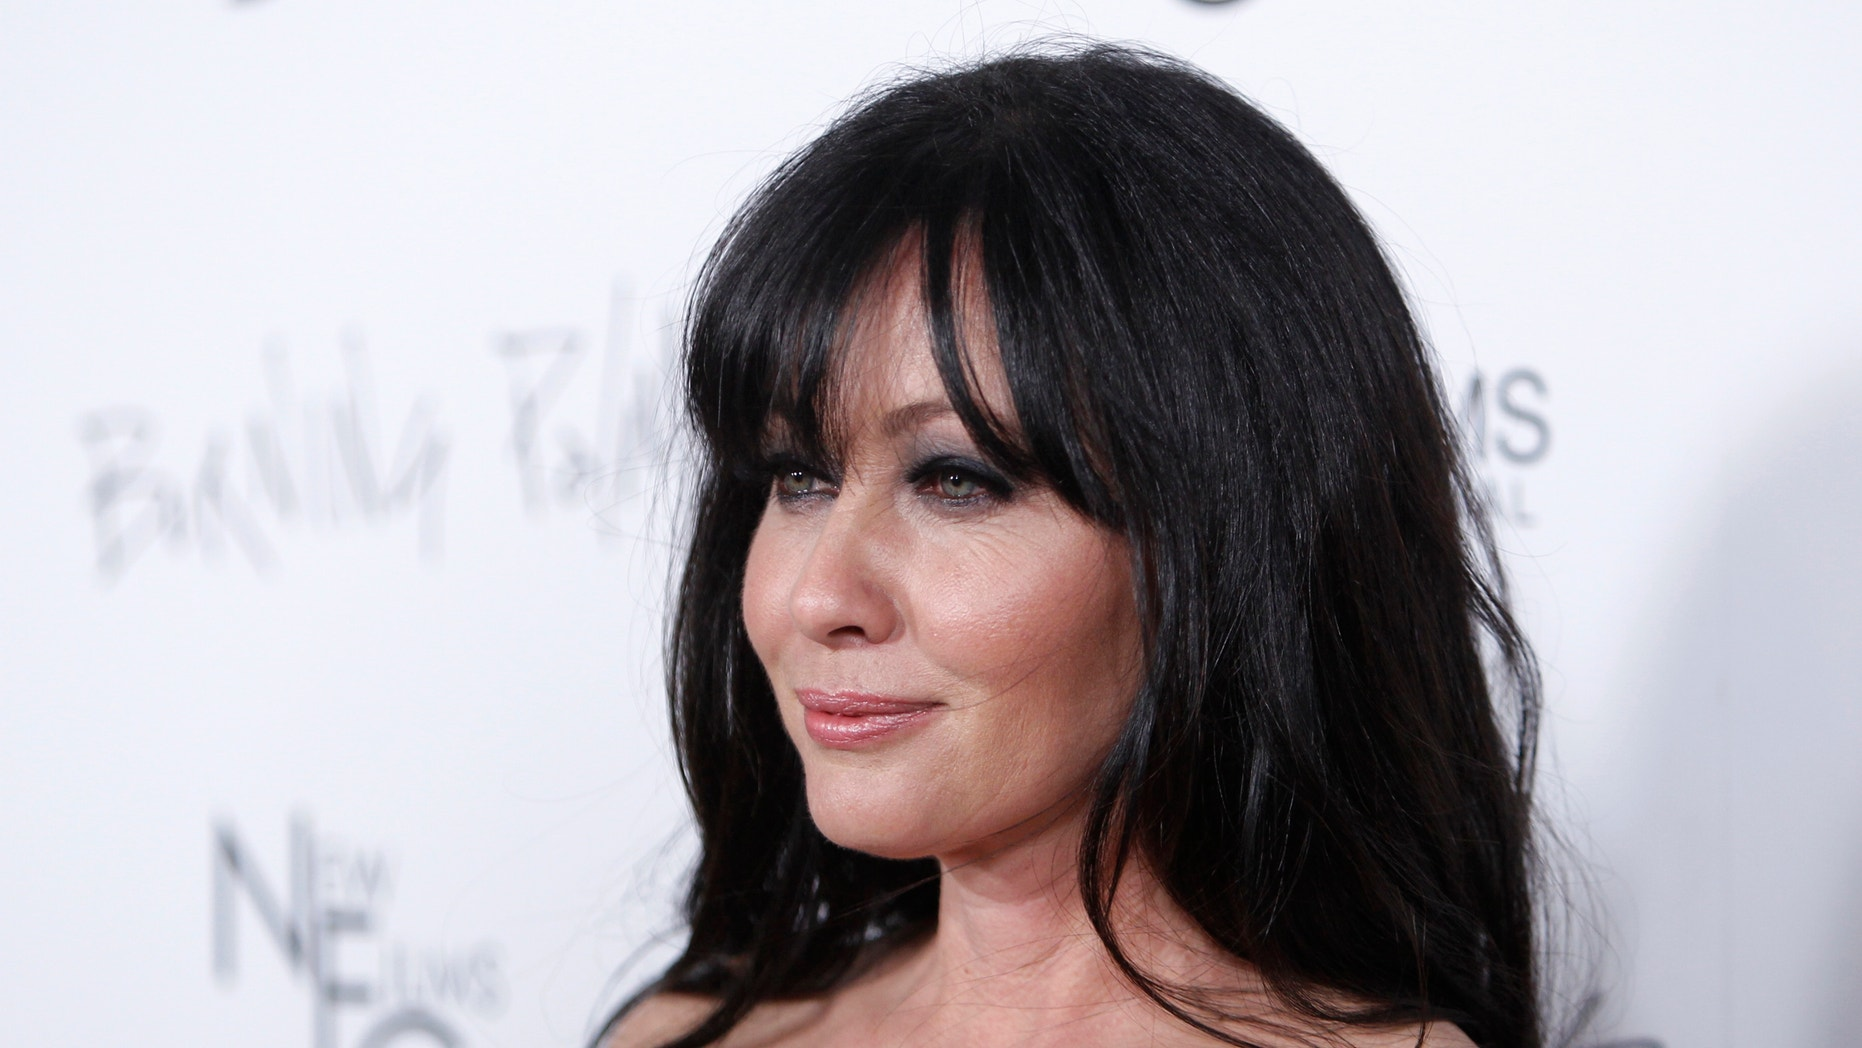 """Shannen Doherty poses at the premiere of the film """"Burning Palms."""""""